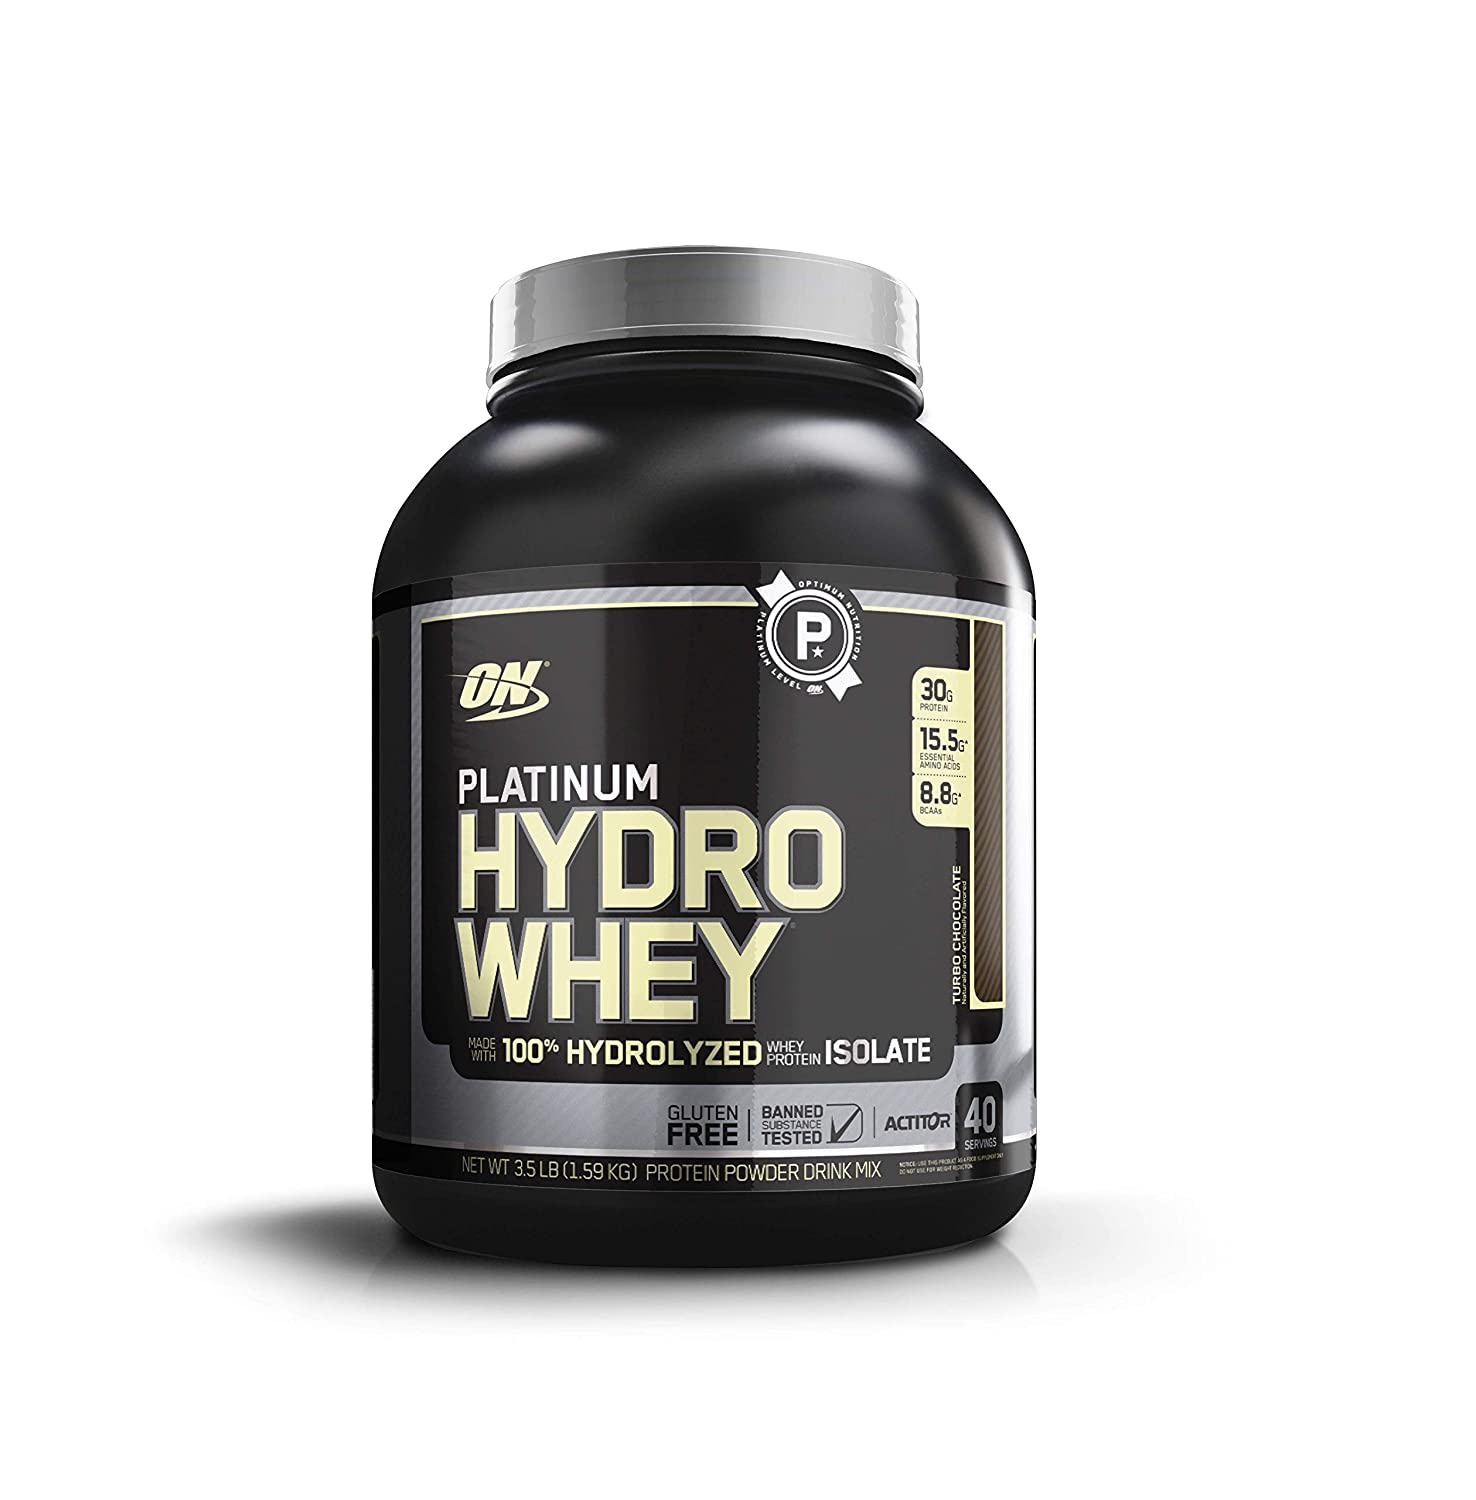 OPTIMUM NUTRITION Platinum Hydrowhey Protein Powder, 100 Hydrolyzed Whey Protein Isolate Powder, Flavor Turbo Chocolate, 3.5 Pounds